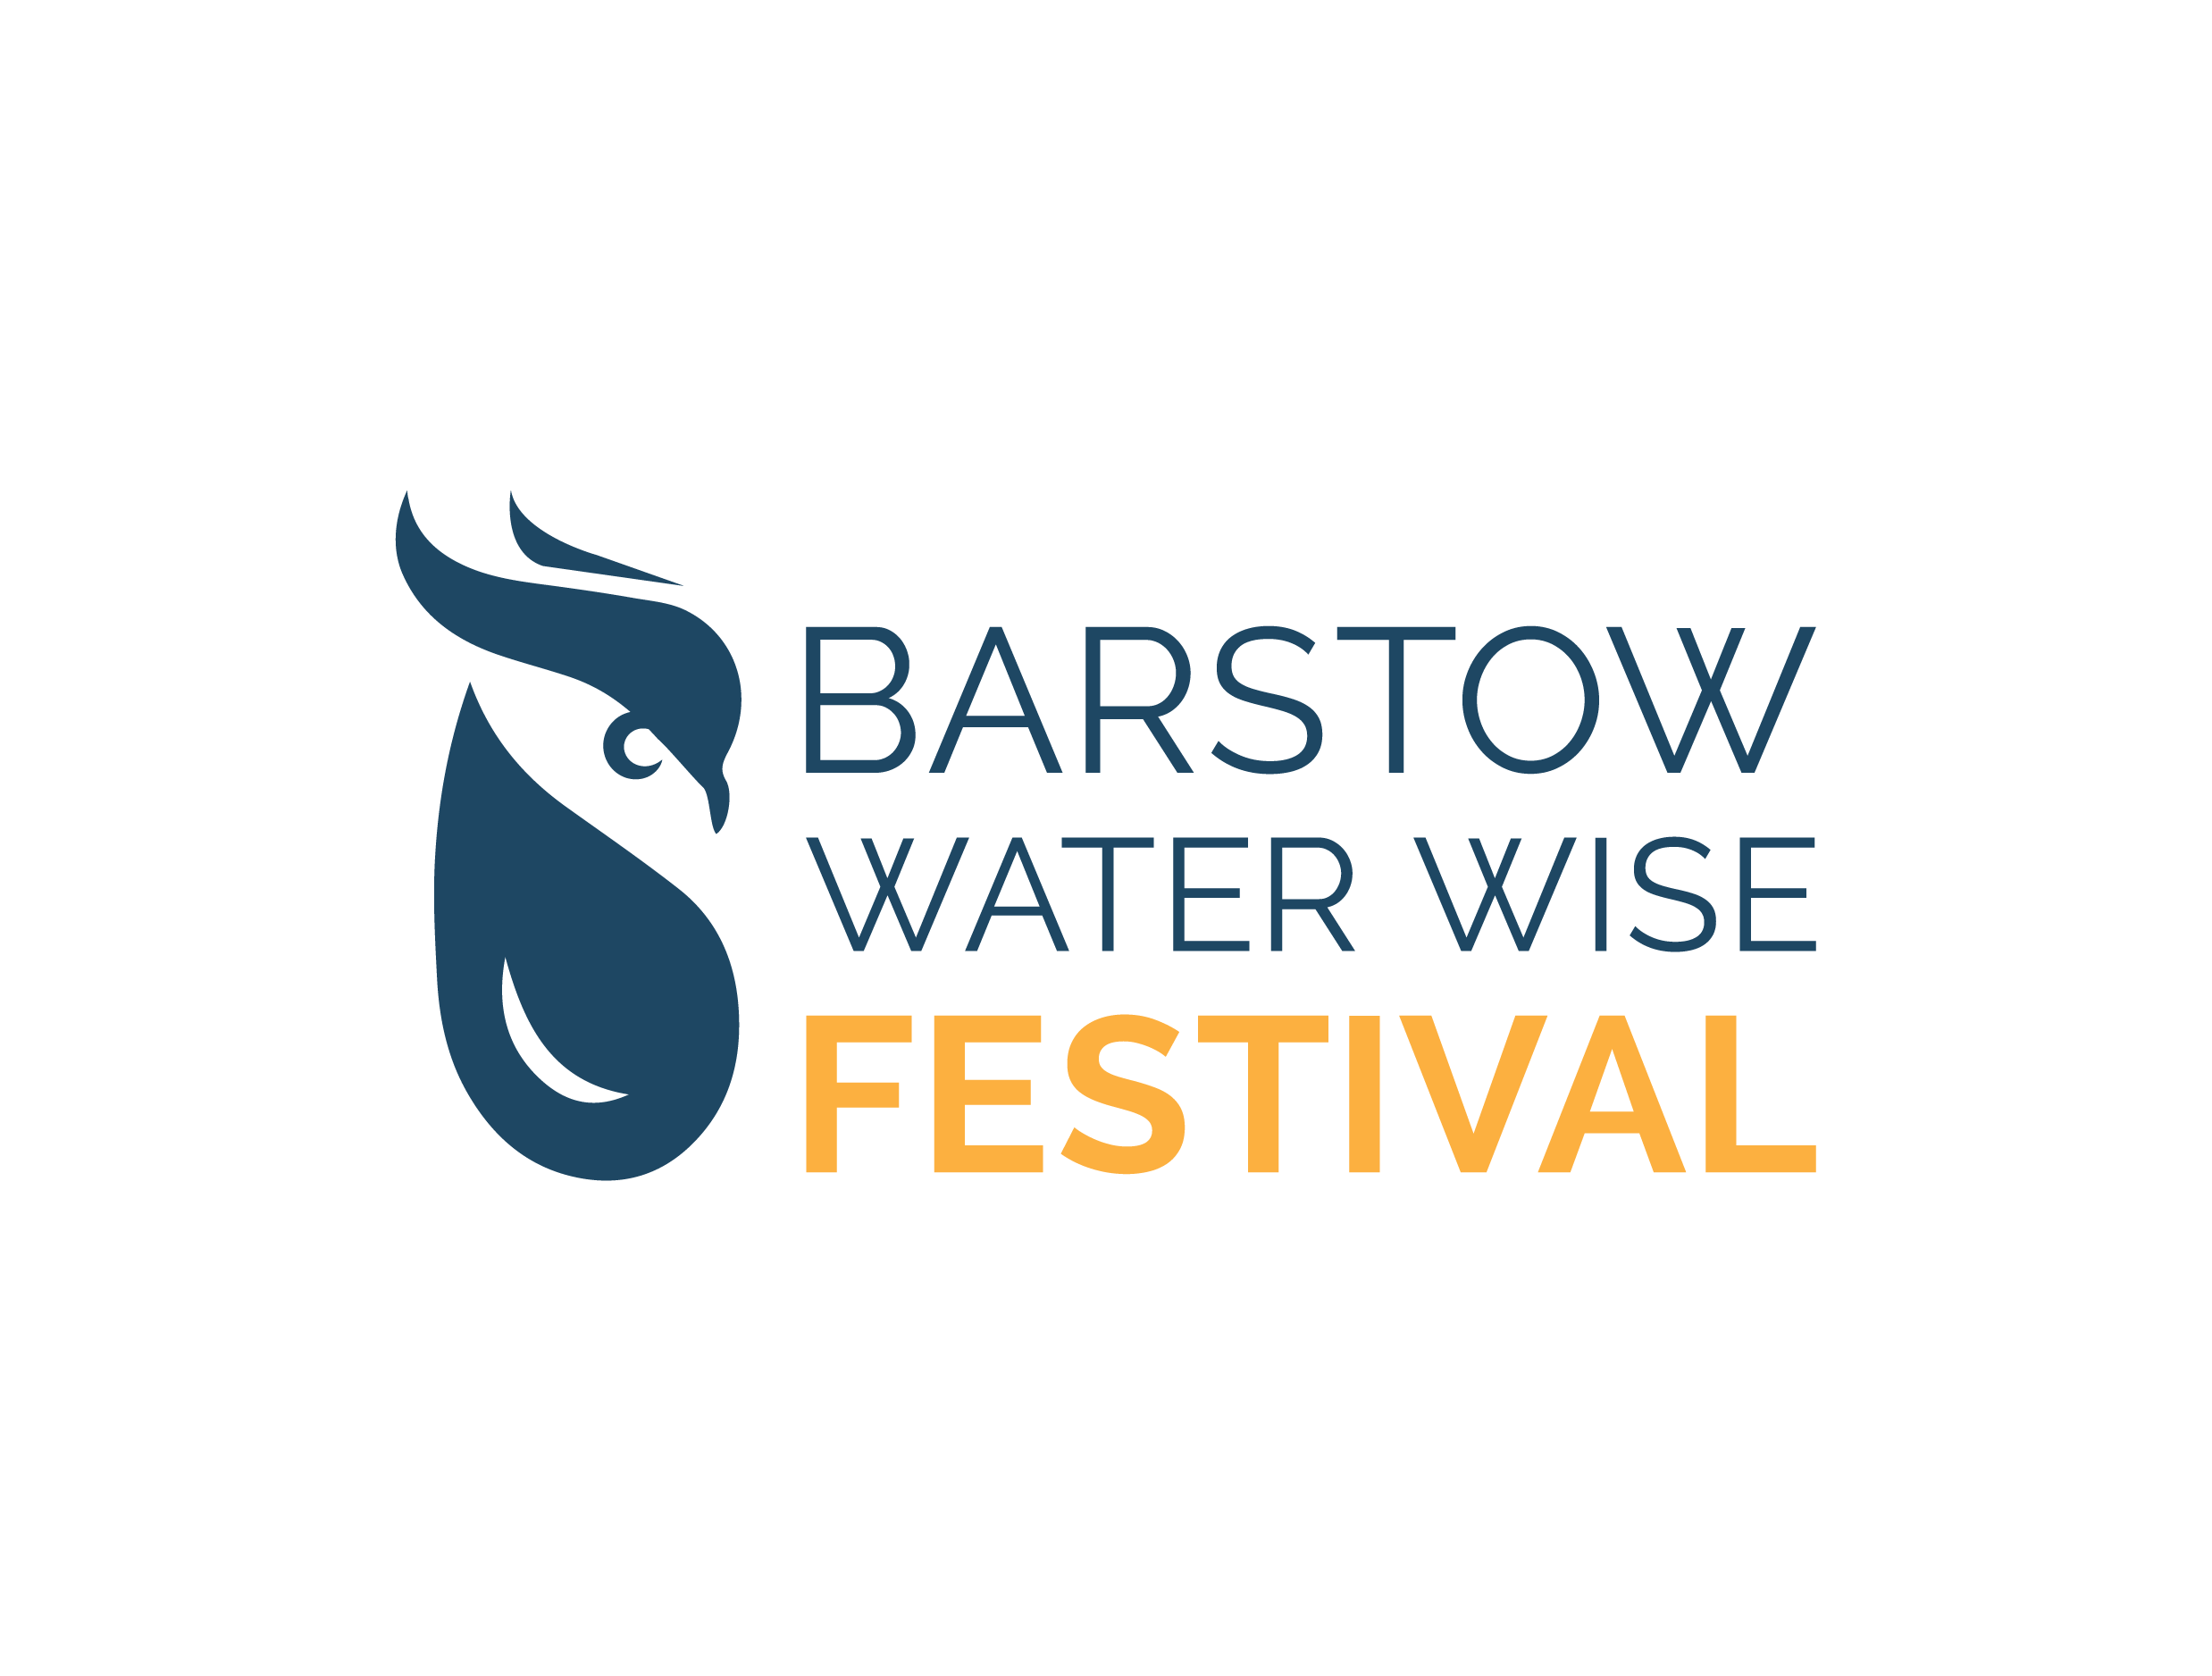 Barstow_Water_Wise_Festival_Web_Artboard 3.png